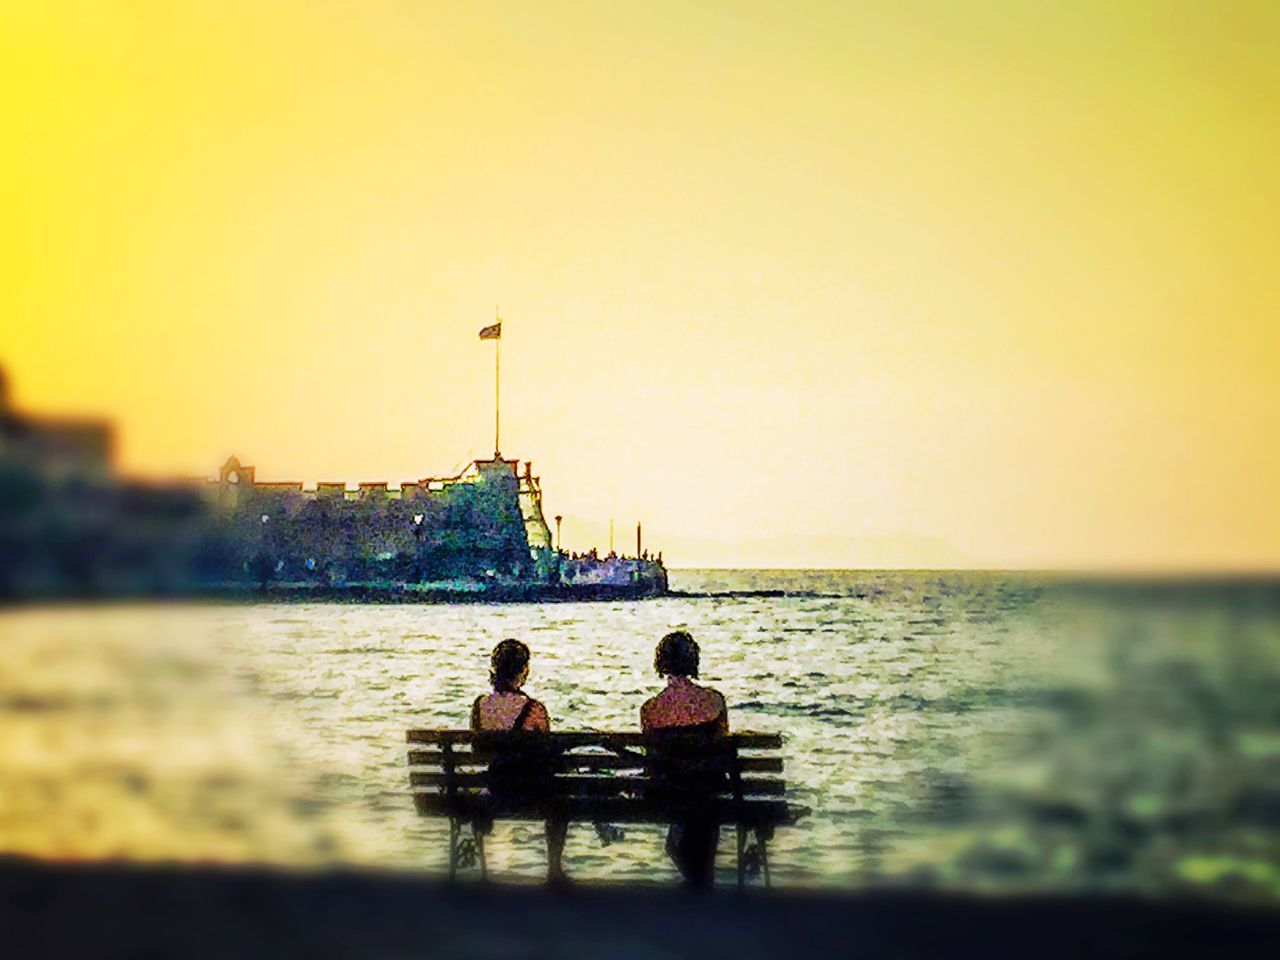 water, sea, leisure activity, sunset, two people, nature, togetherness, men, sitting, beauty in nature, sky, lifestyles, real people, clear sky, outdoors, built structure, scenics, women, architecture, day, people